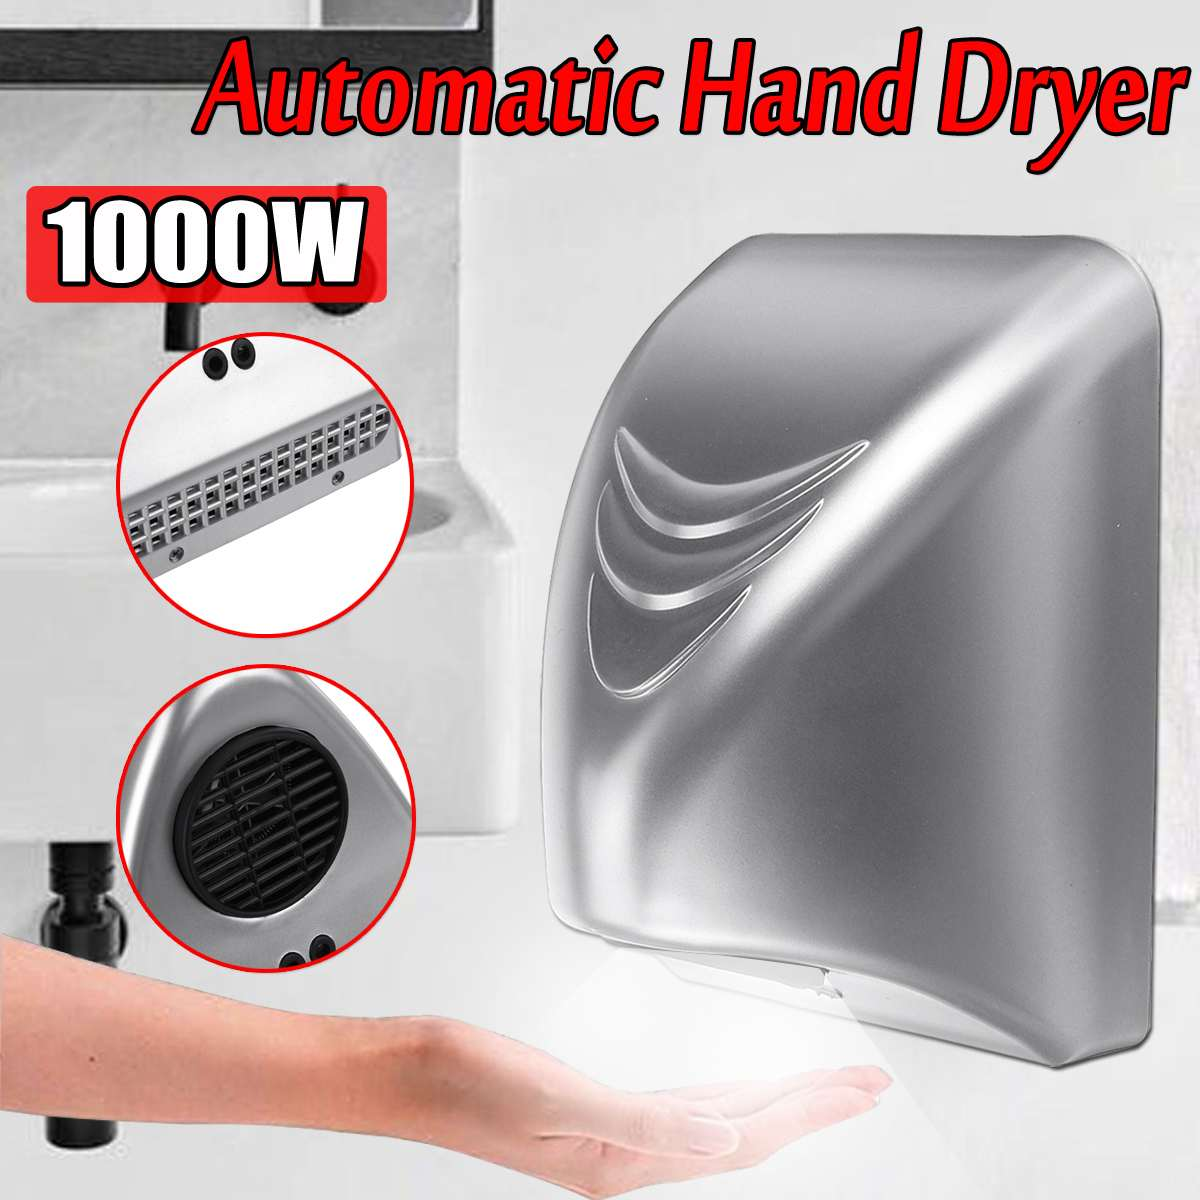 Powerful 1000W Hand Dryer Hotel Commercial Hand Dryer Electric Automatic Induction Hands Drying Device Bathroom Winding Machine